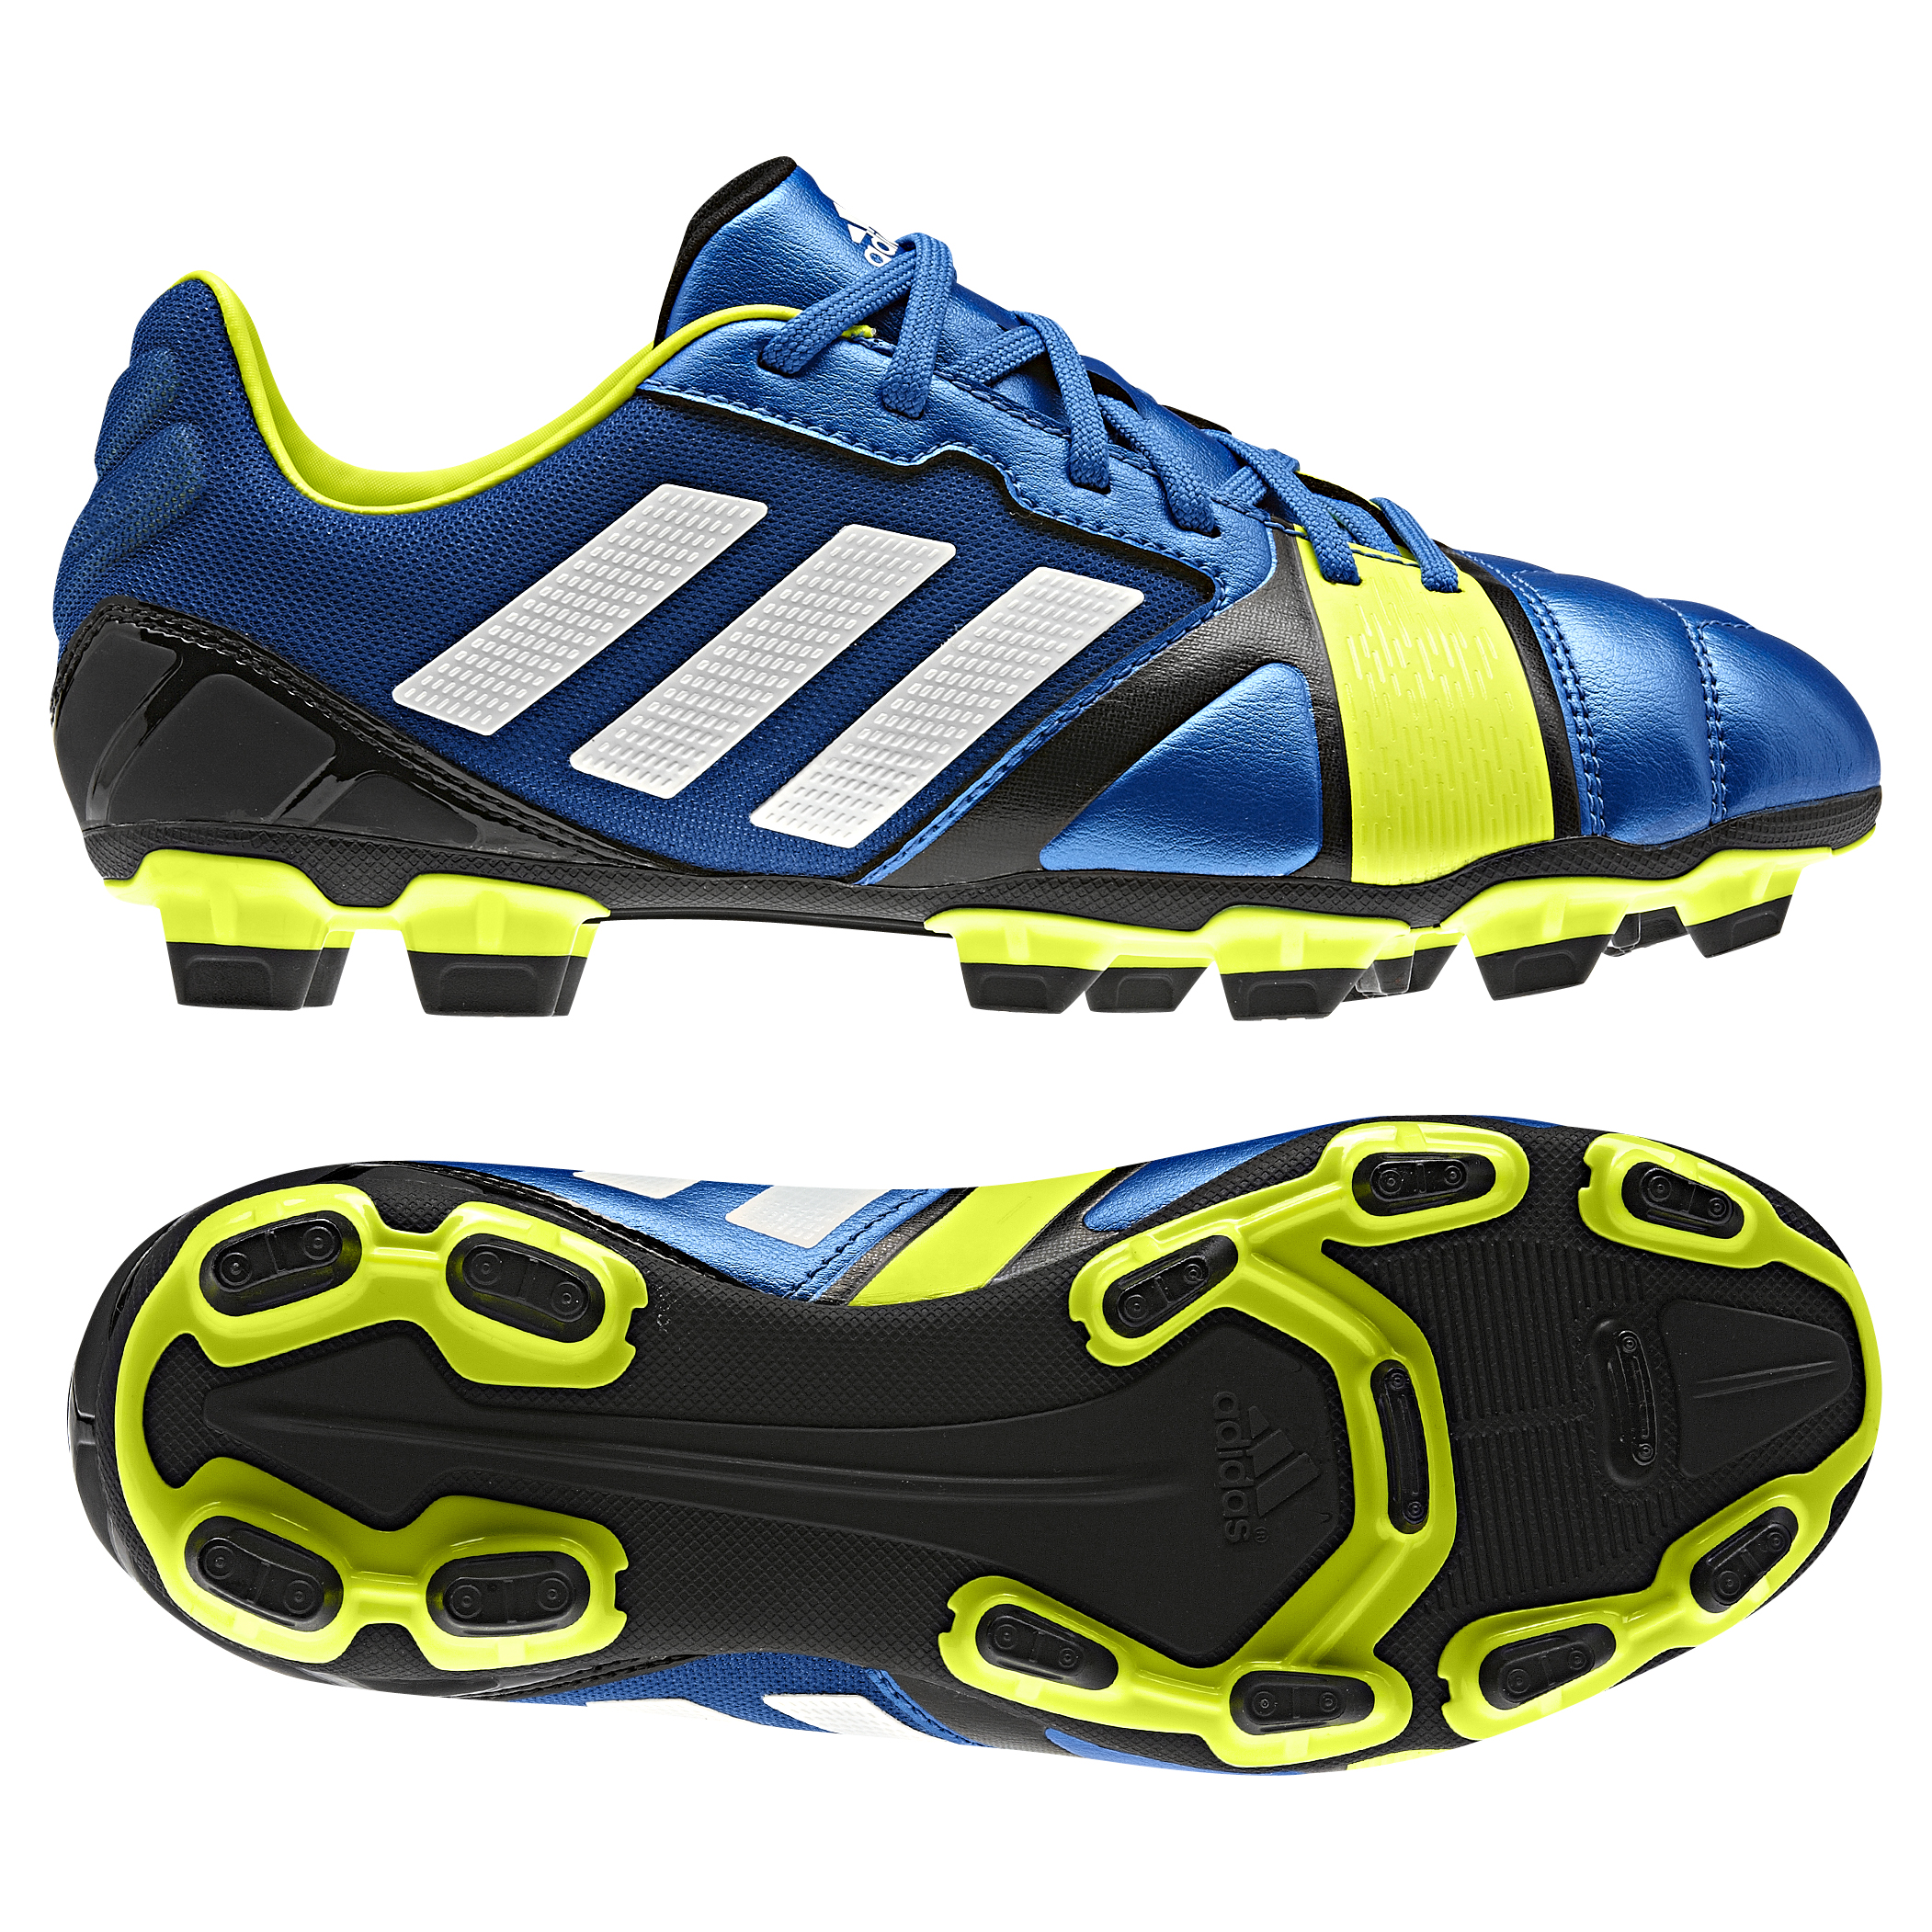 Adidas Nitrocharge 2.0 TRX Firm Ground Football Boots - Kids Blue